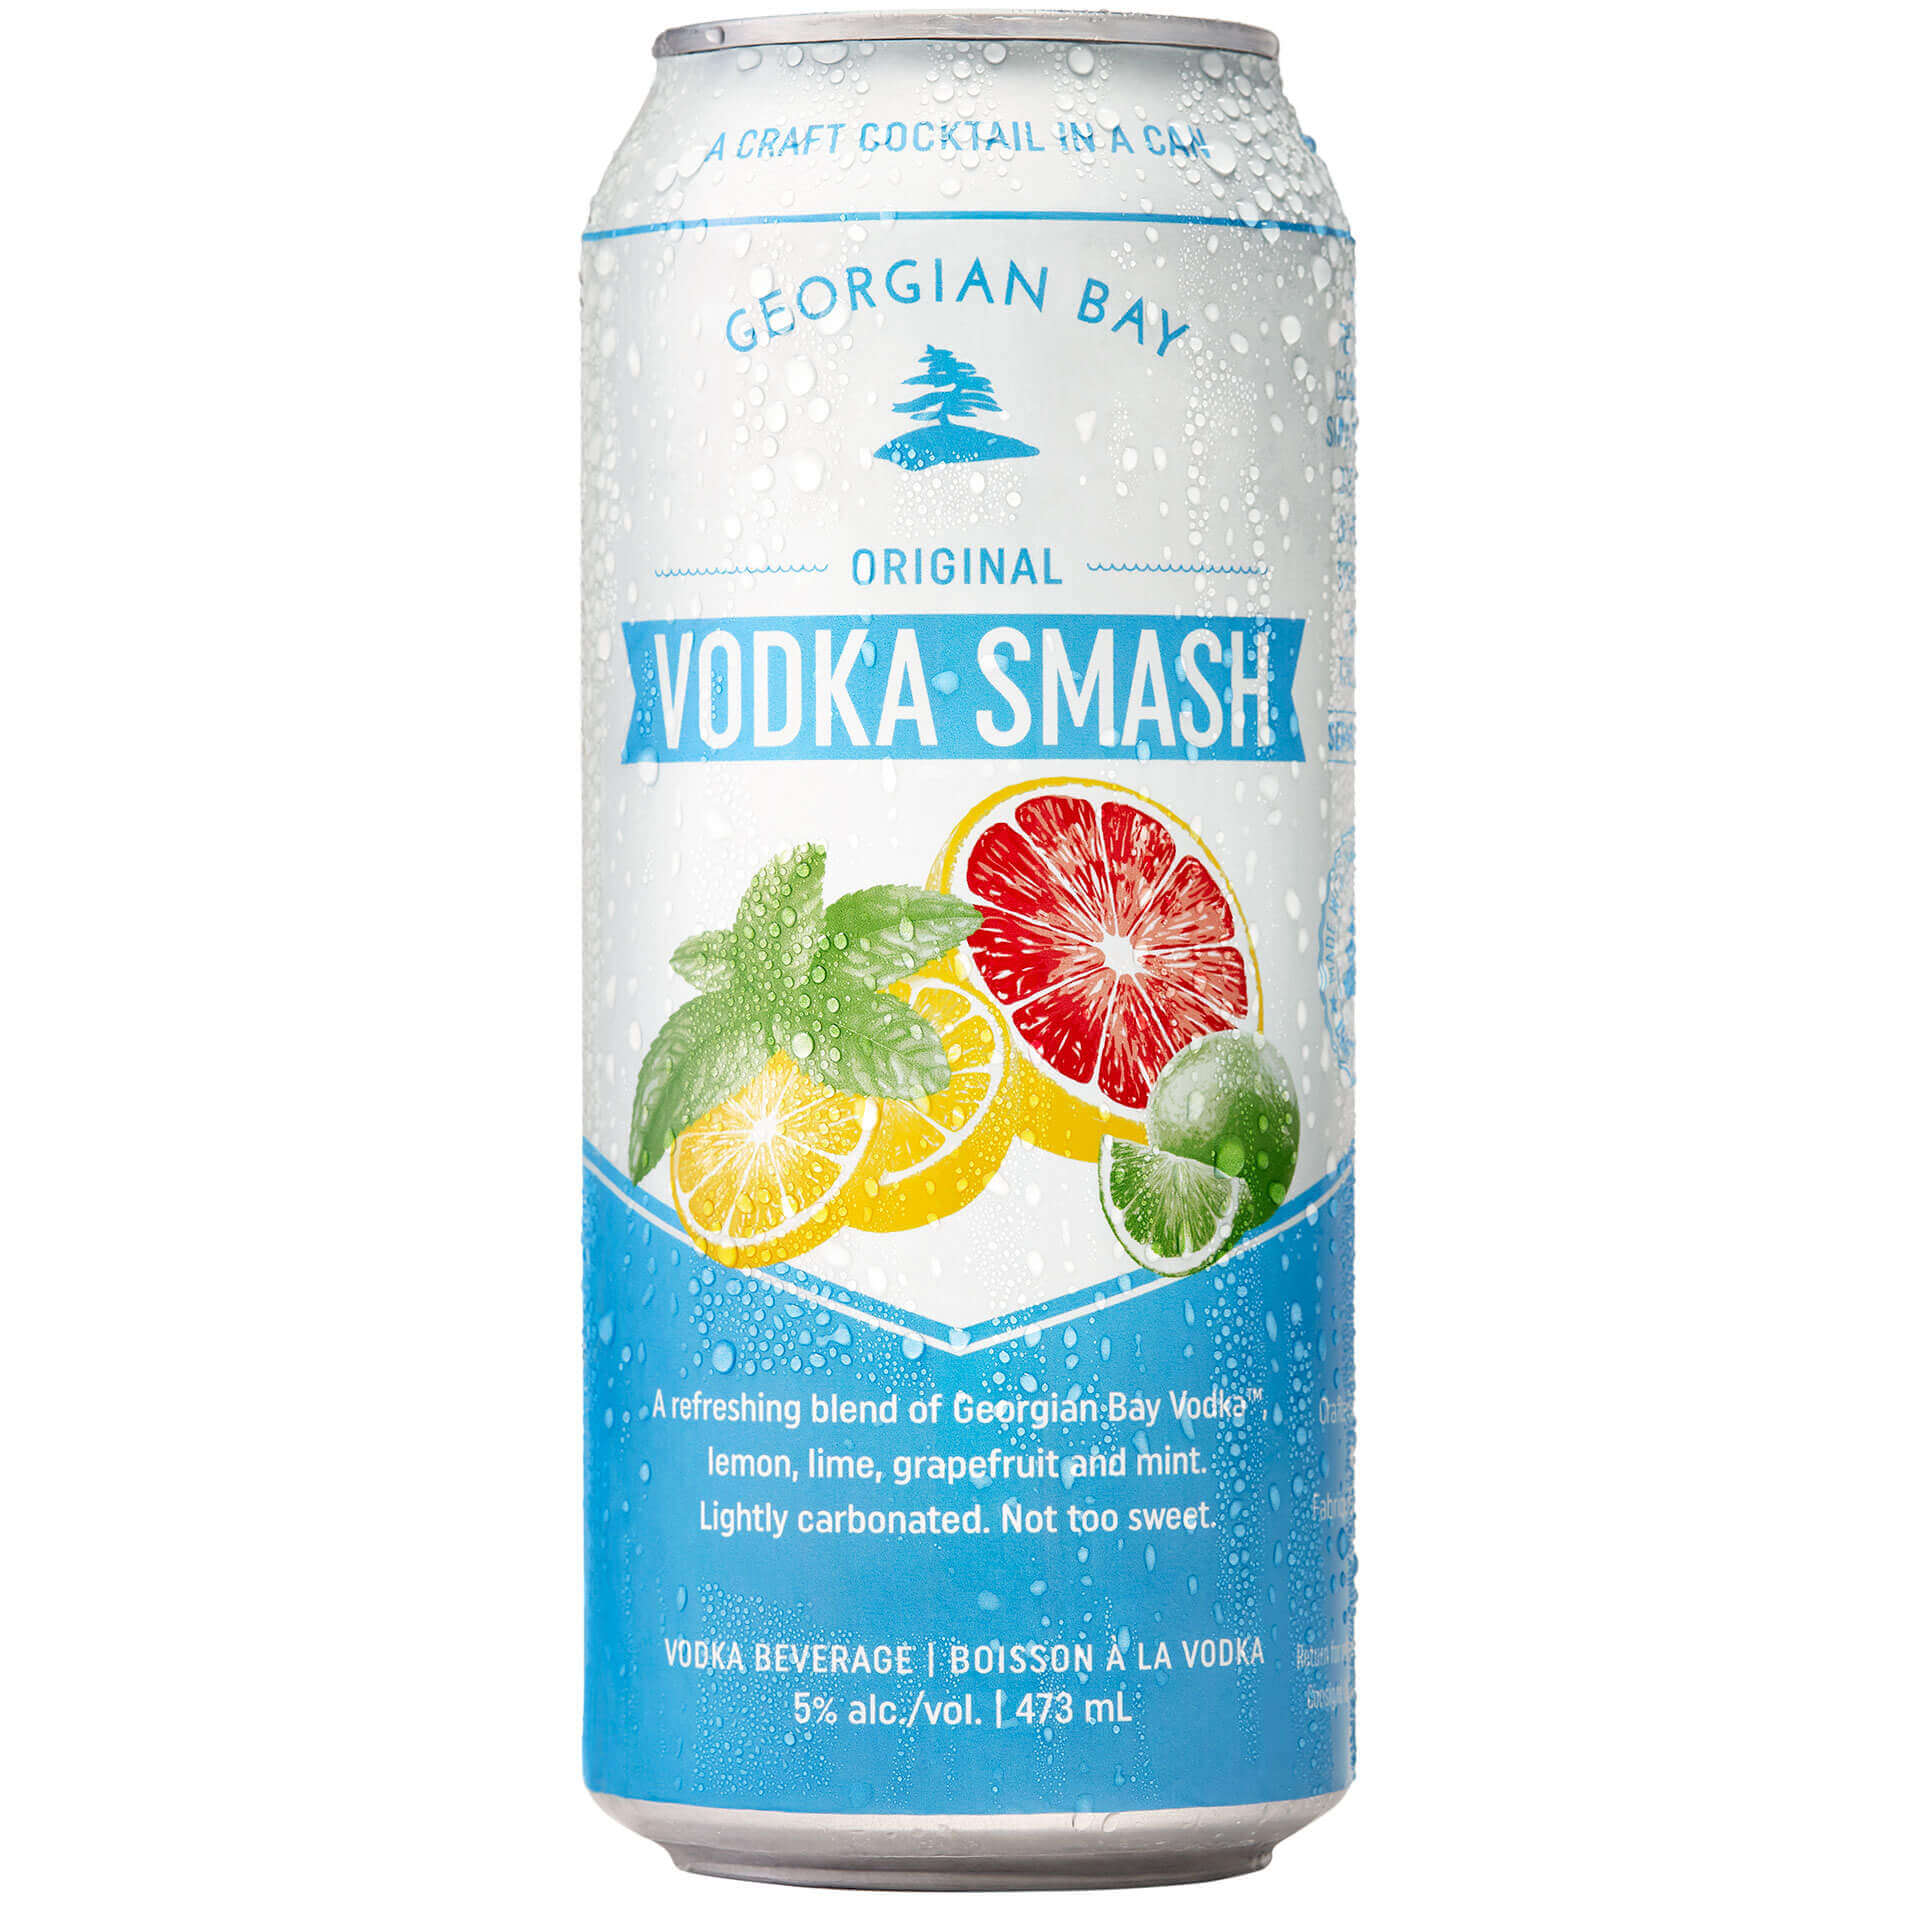 Georgian Bay Spirit Co. - Georgian Bay Vodka Smash